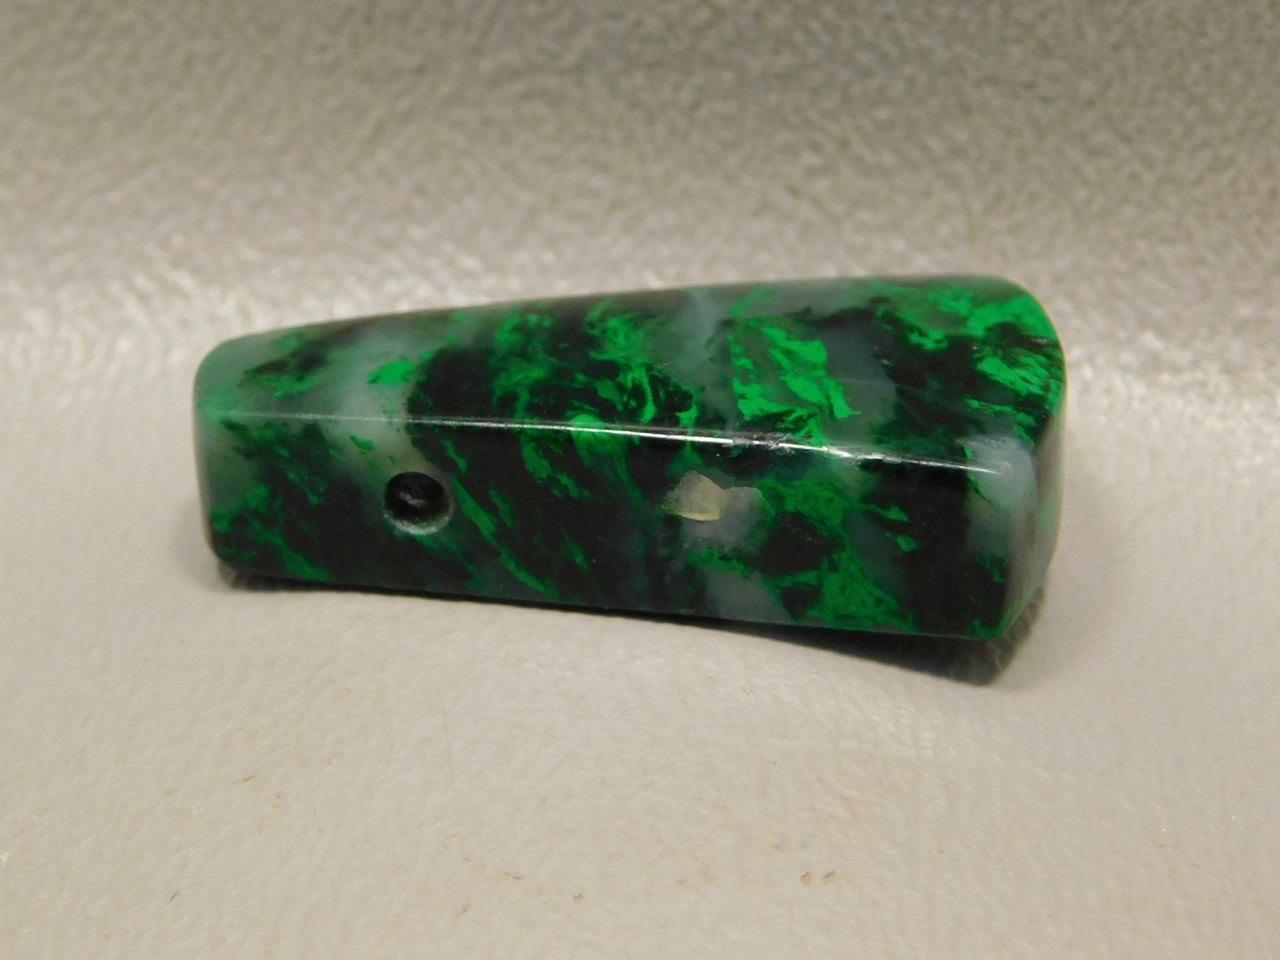 Rare Maw Sit Sit Green Jade Drilled Stone Focal Point Bead Pendant #1